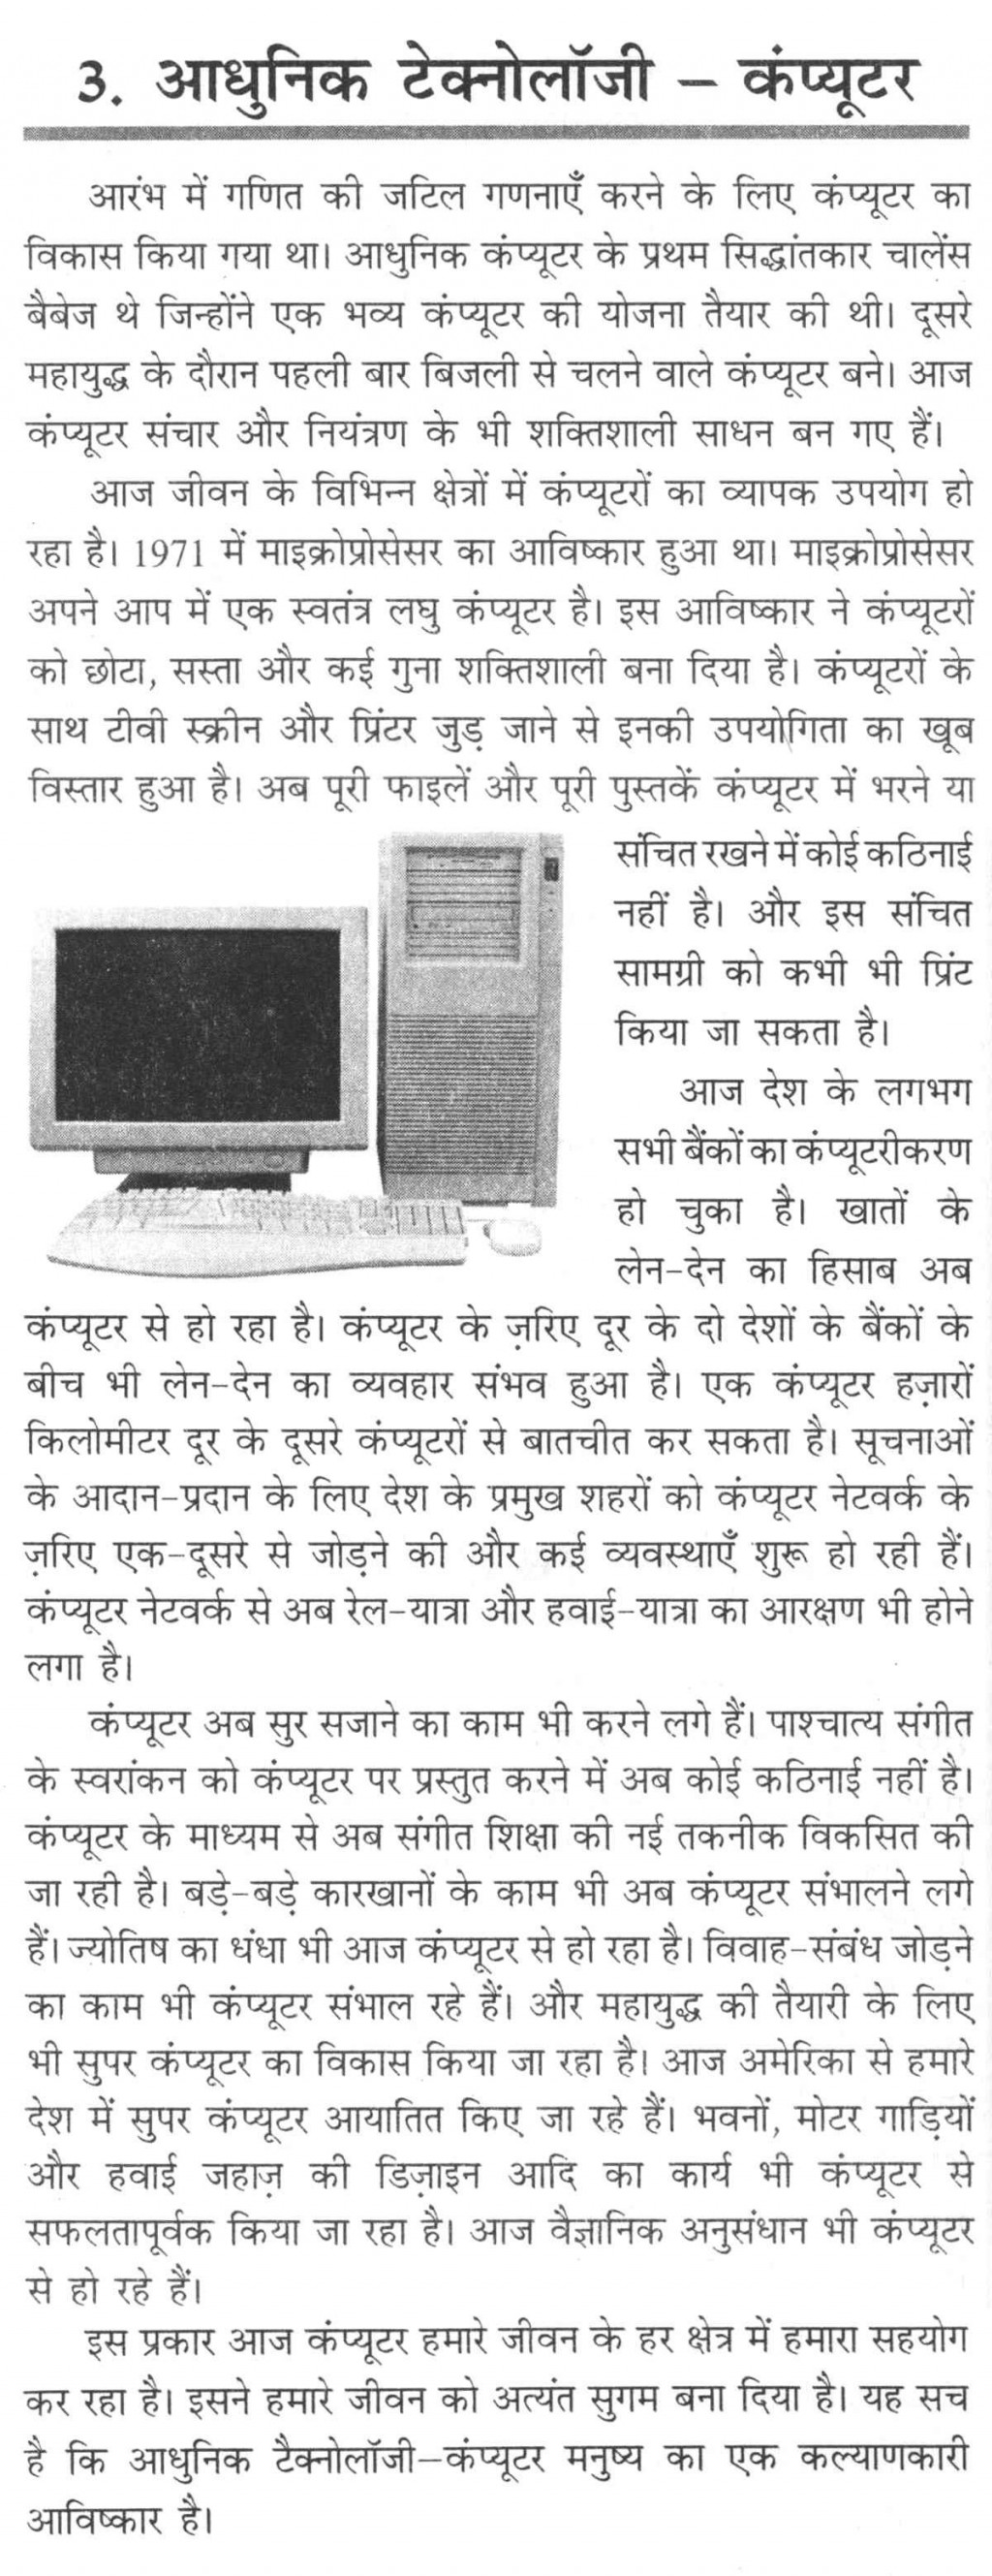 006 Essay Example On Computer 62 Thumb Fearsome Science In Hindi Urdu Large